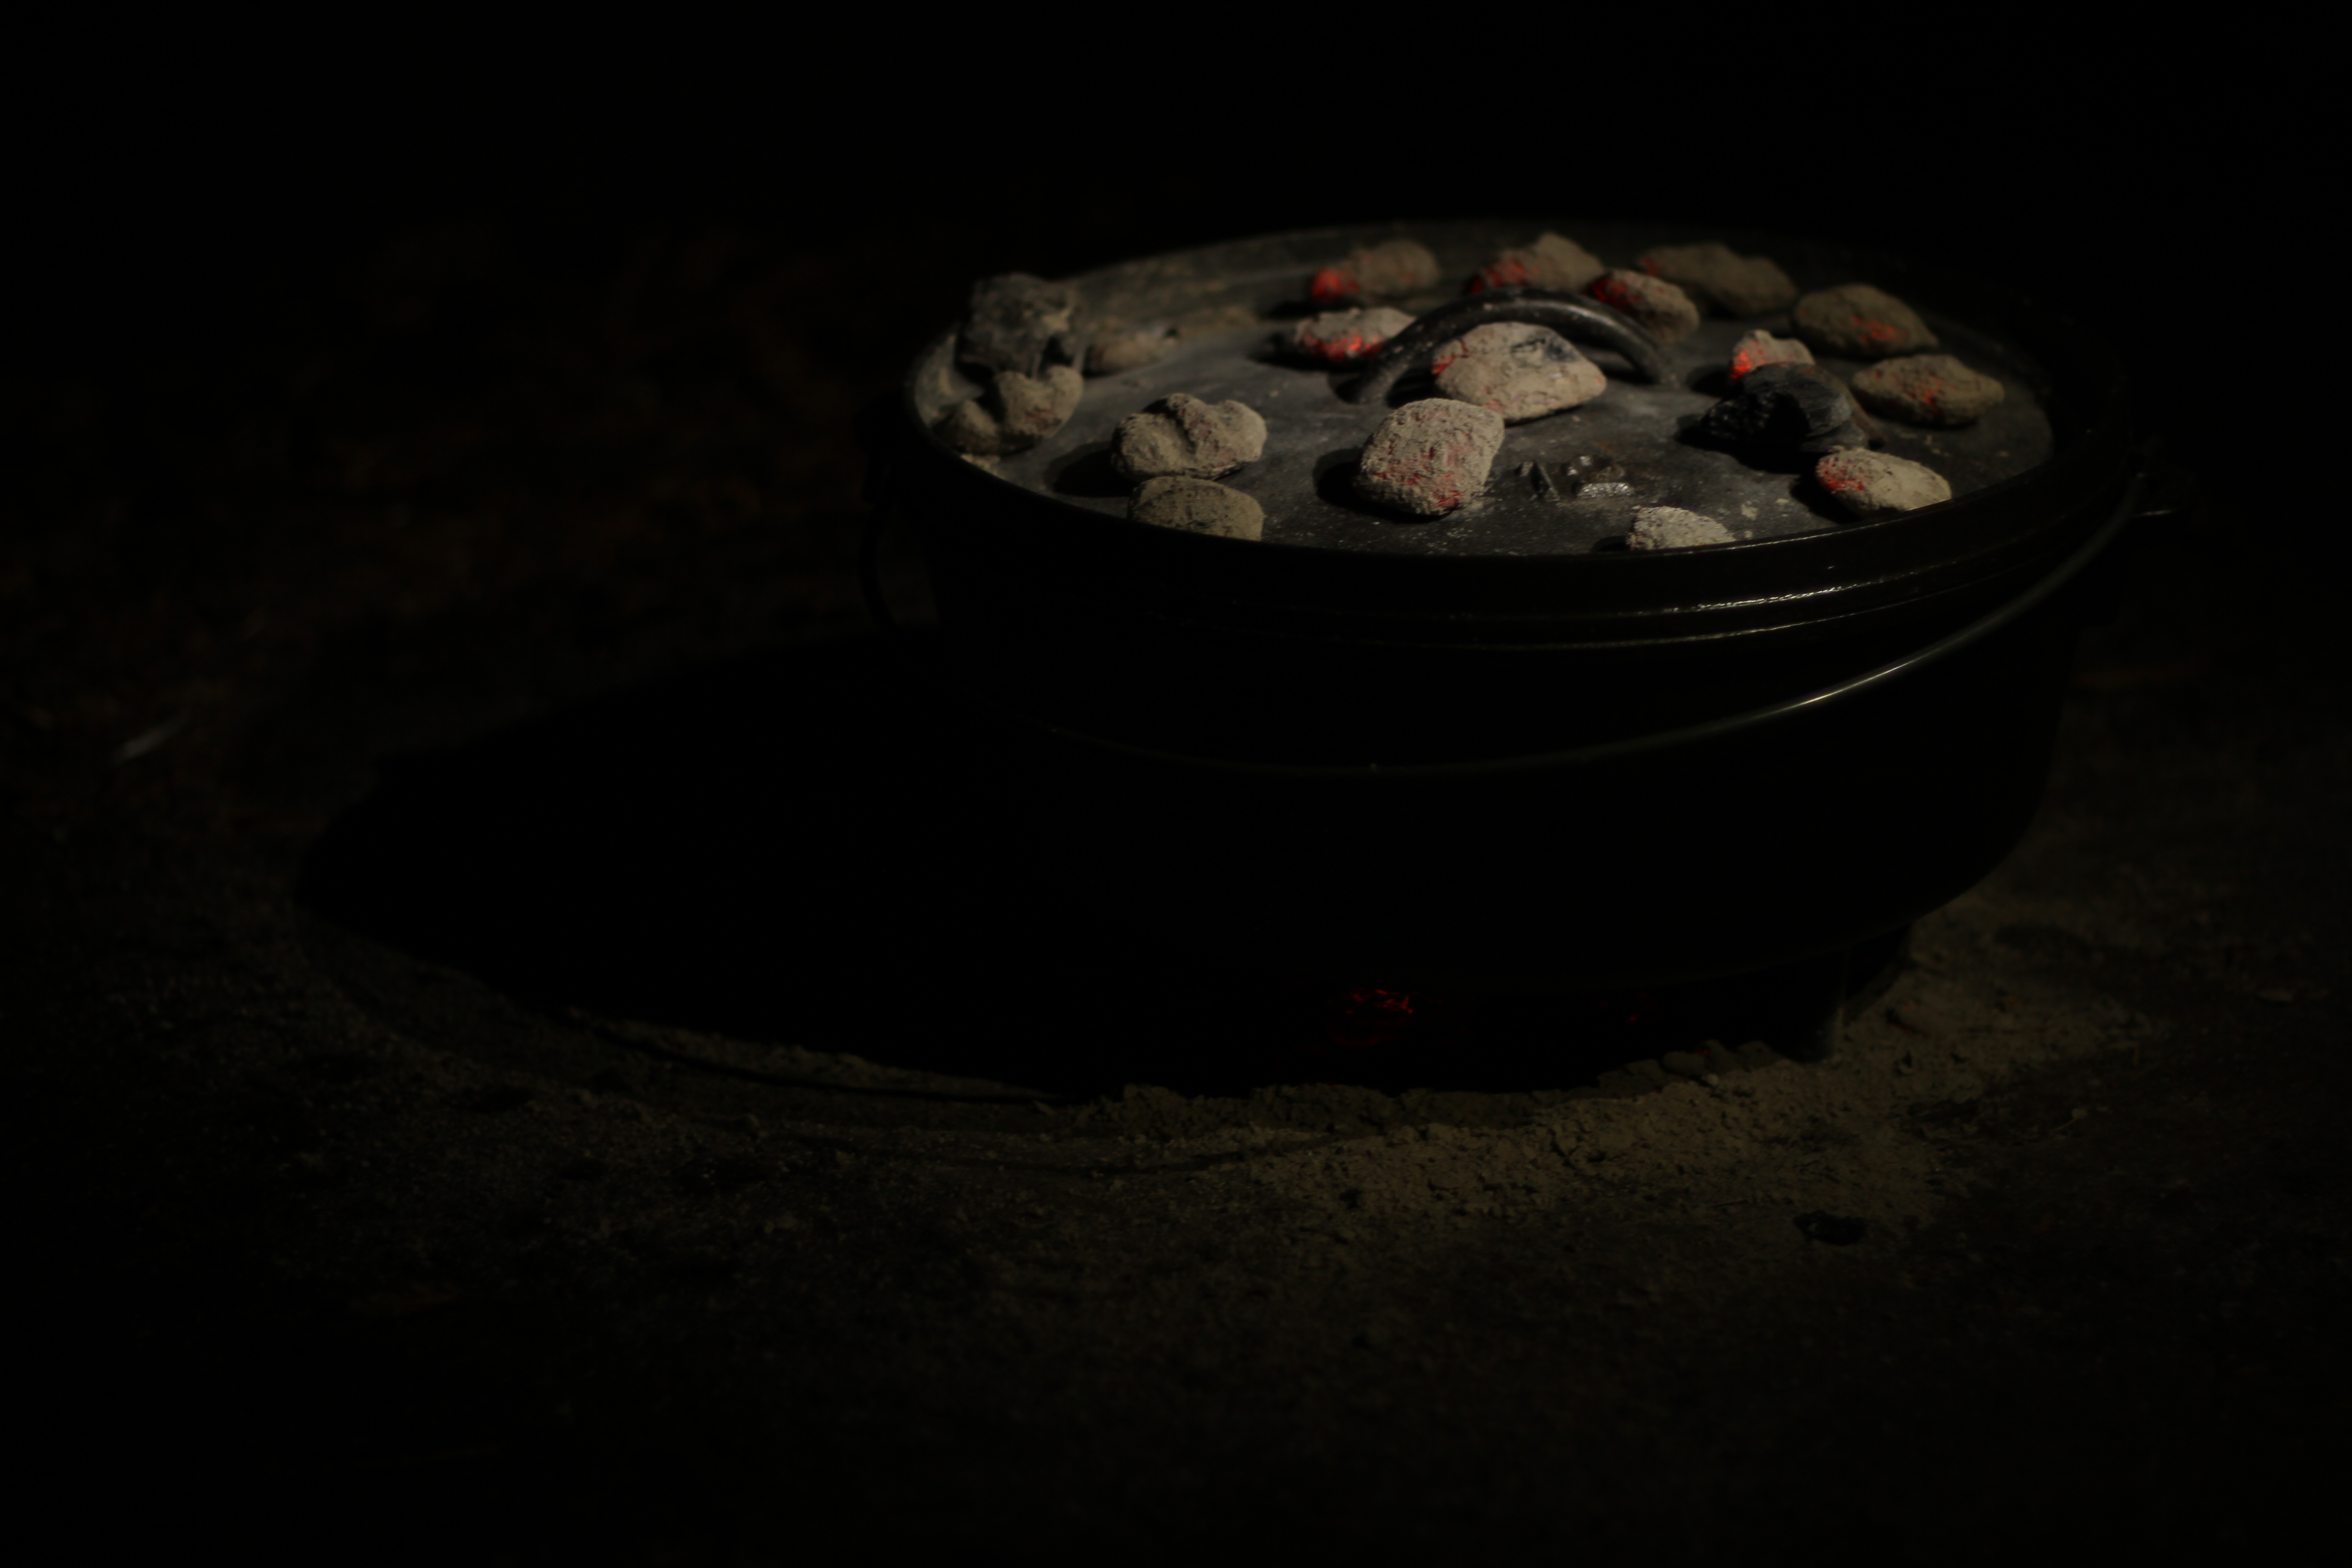 Camping recipe: cooking Spicy sweet potato stew and biscuits in the dutch oven